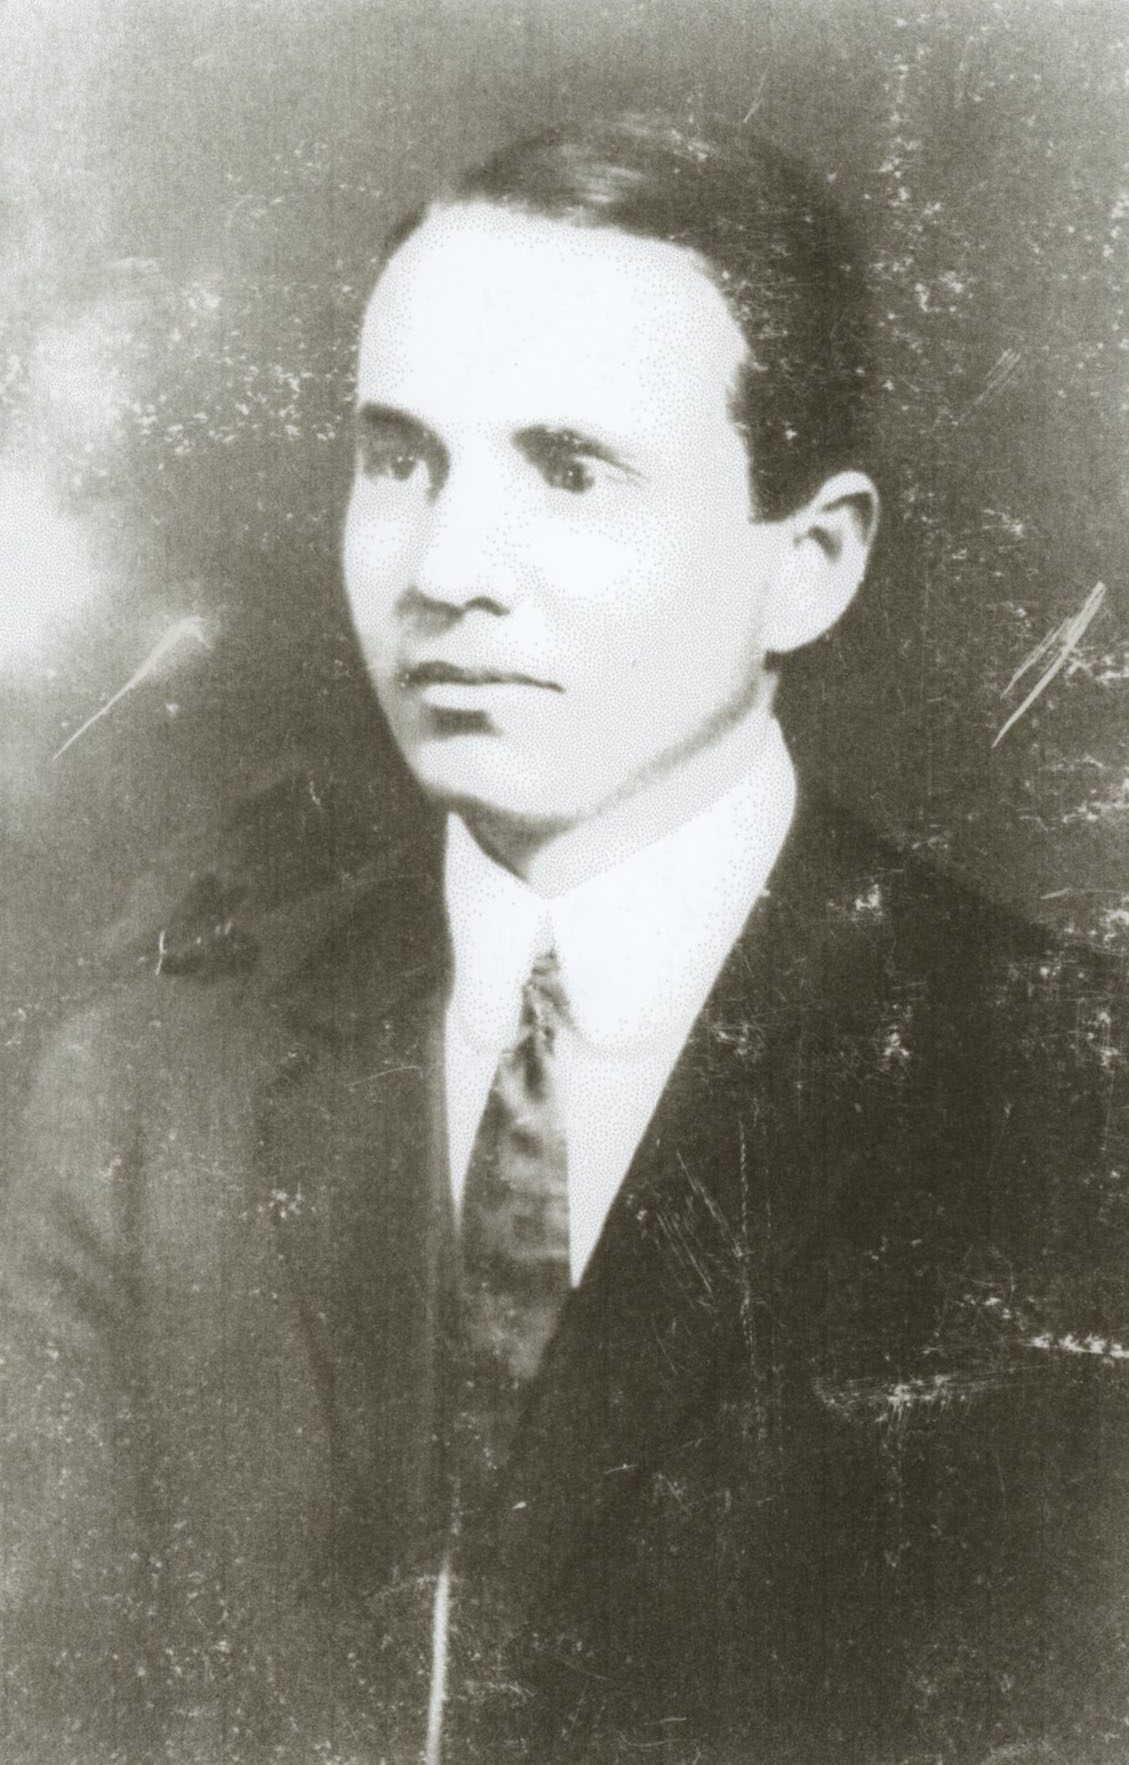 Dr. P. I. Nixon as a young man. Courtesy of Leon Valley Public Library and Grace Nixon